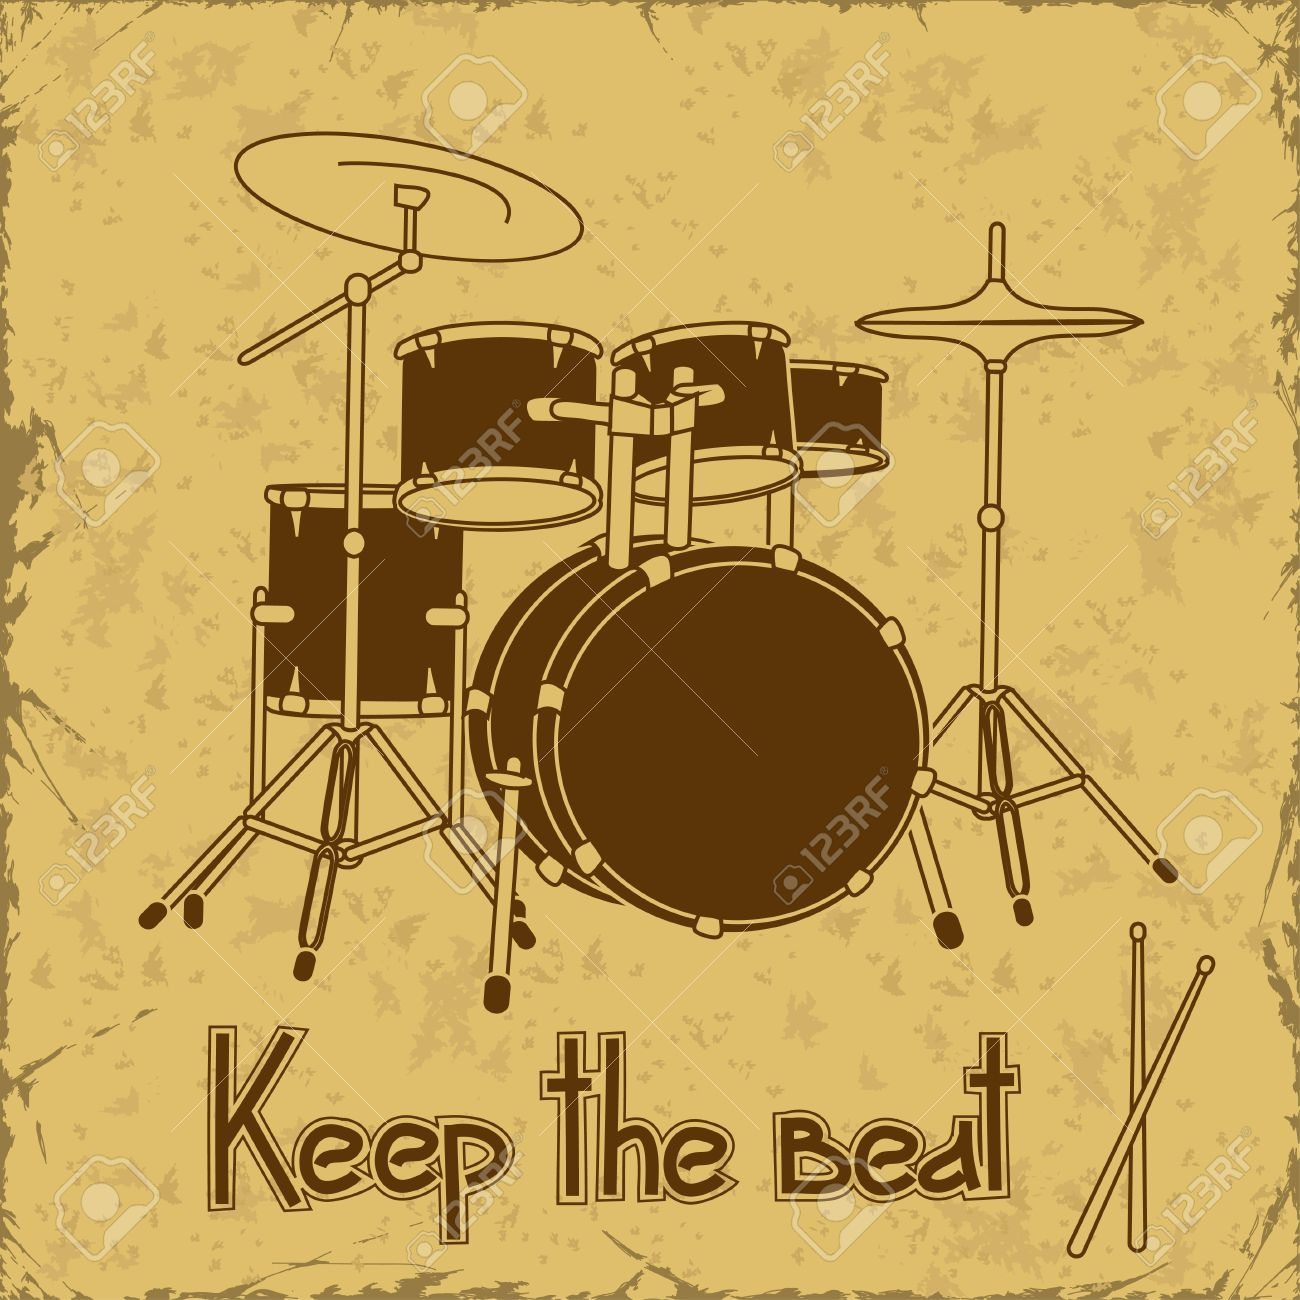 Illustration Of Drum Set On A Vintage Background Royalty 1300x1300